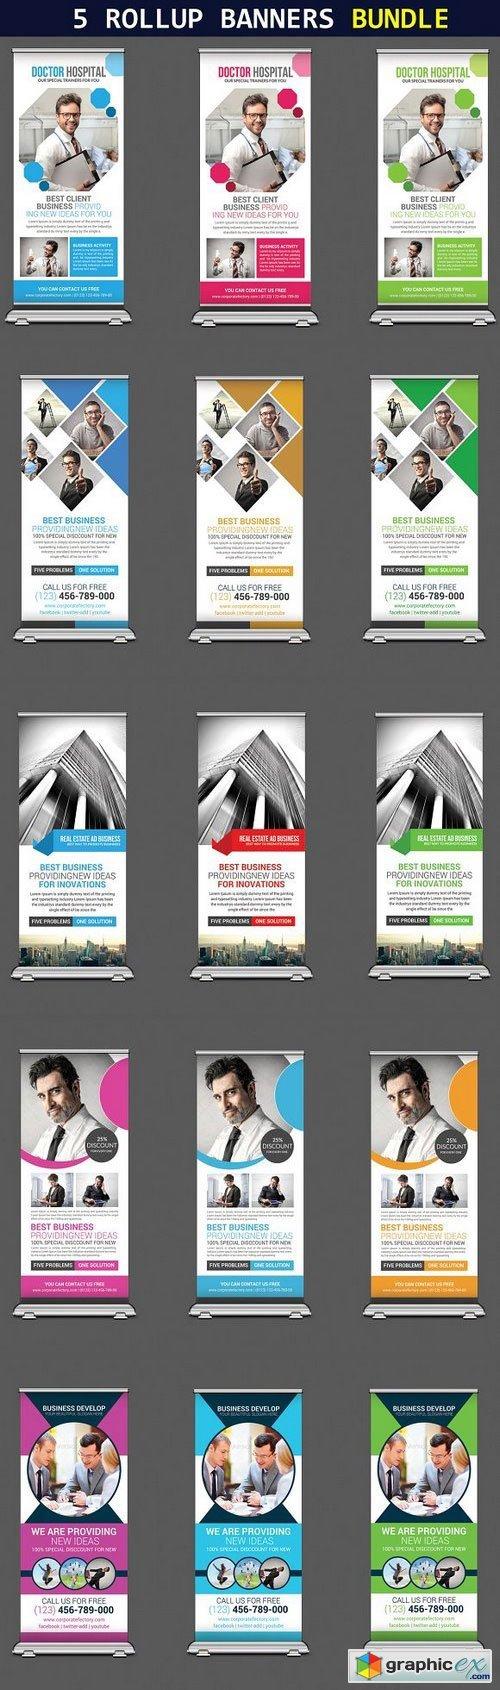 5 Business Corporate Rollup Banners